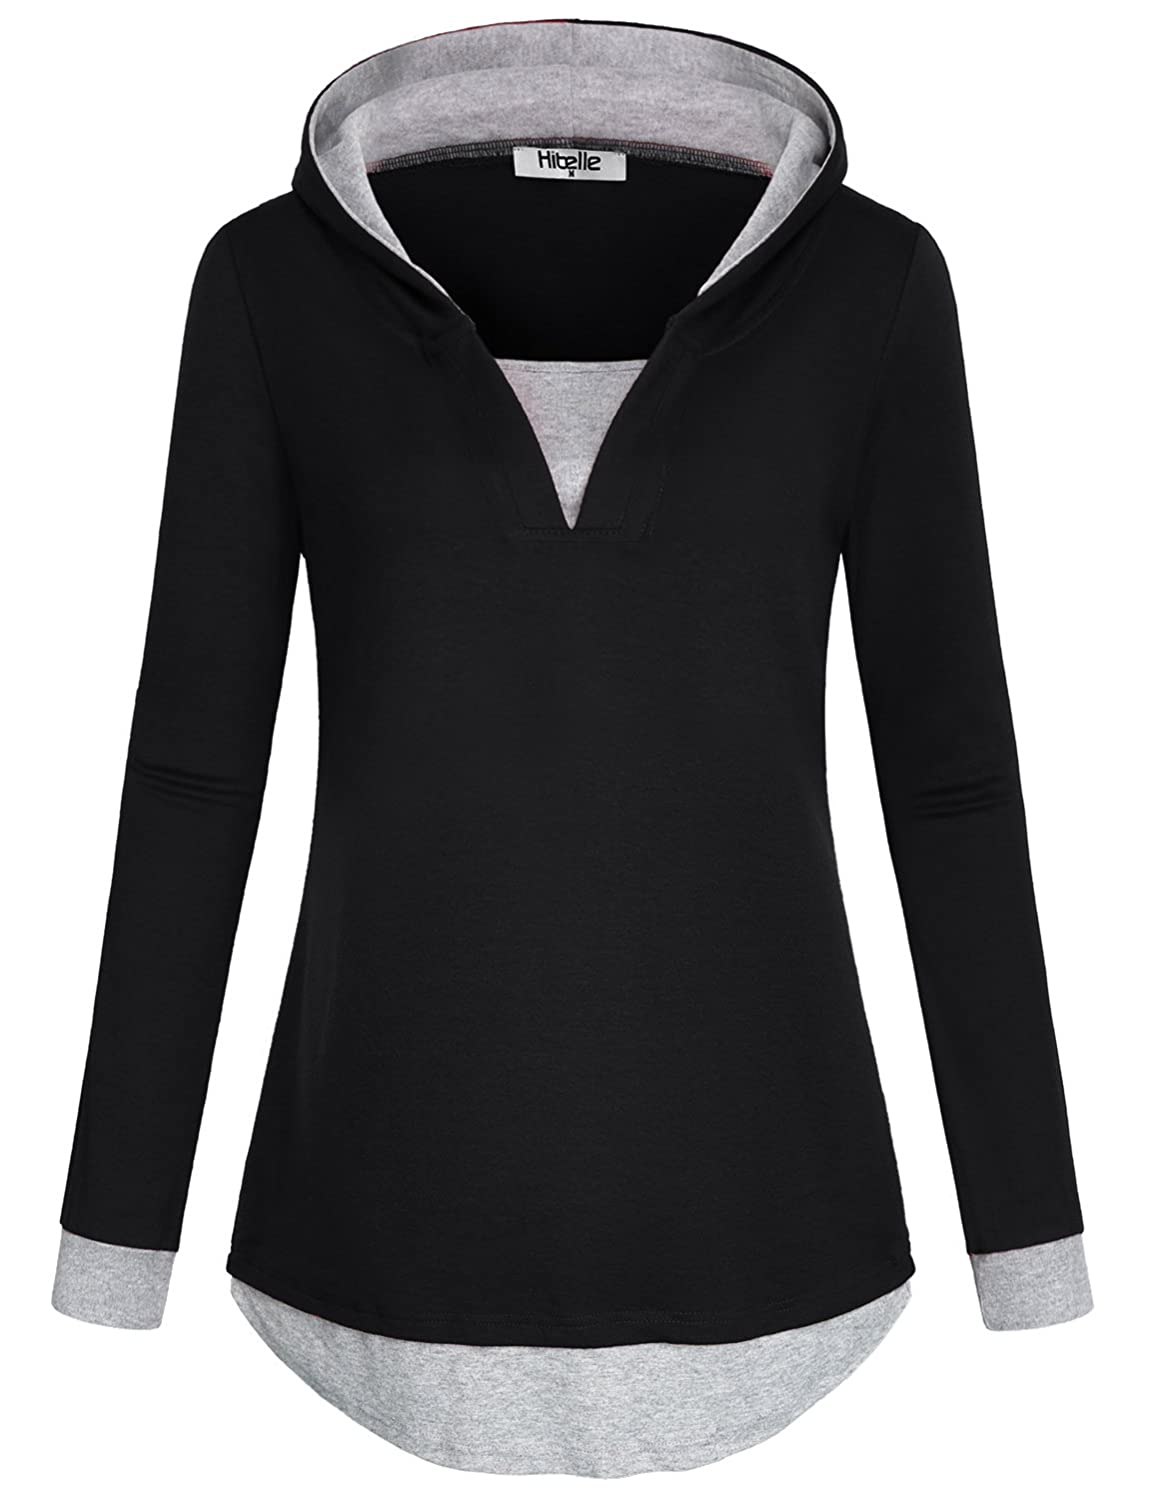 7ea48fe14bb5eb Hibelle Women s Casual Color Block 2 in 1 Long Sleeve Pullover Hoodies at  Amazon Women s Clothing store